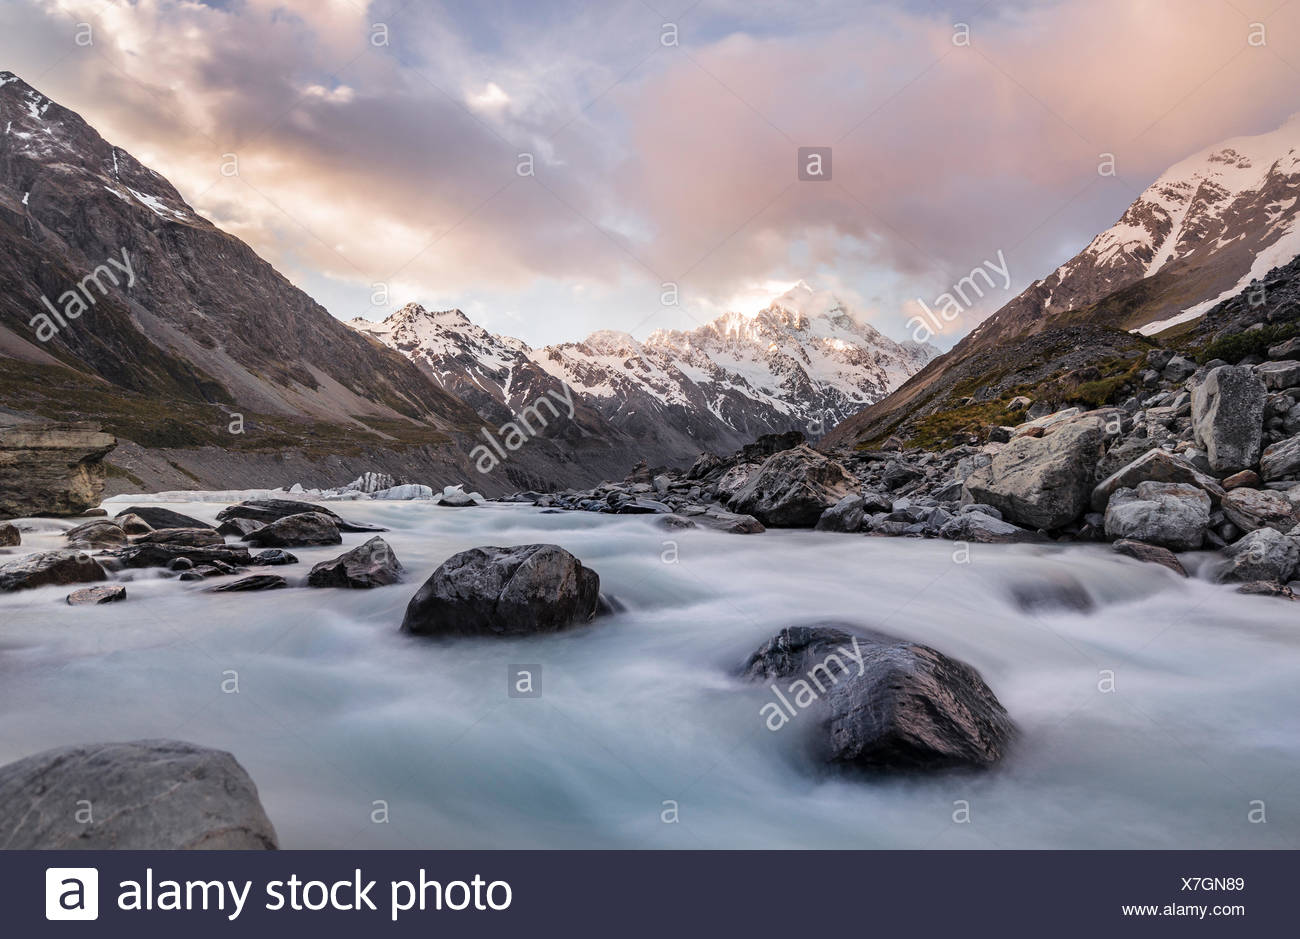 Hooker River, Hooker Valley, Rear Mount Cook, Mount Cook National Park, Southern Alps, Canterbury Region, Southland, New Zealand - Stock Image